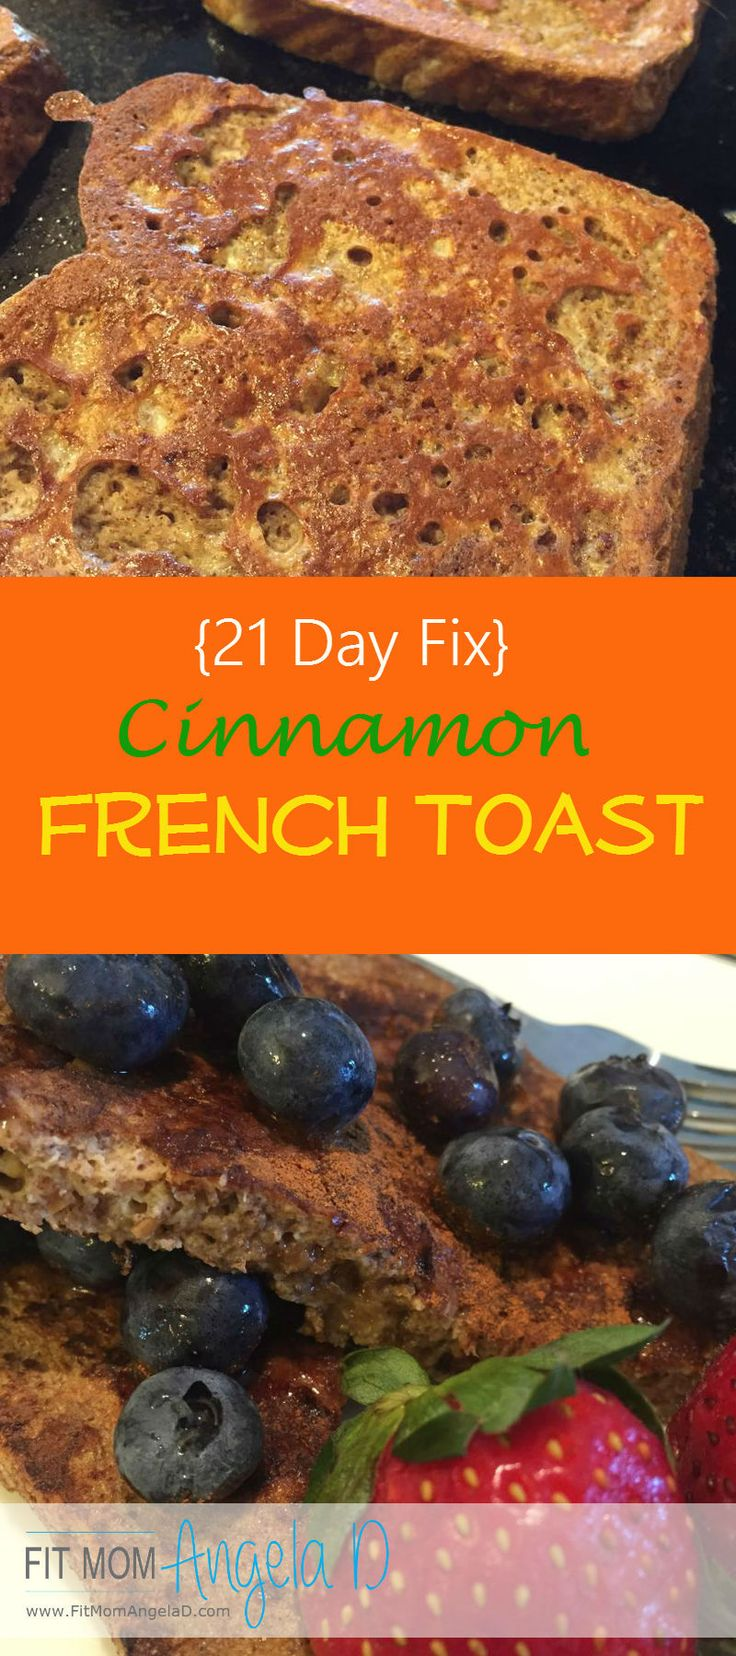 21 Day Fix French Toast | Clean Eats | 21 Day Fix breakfast idea | Healthy French Toast | www.FitMomAngelaD.com